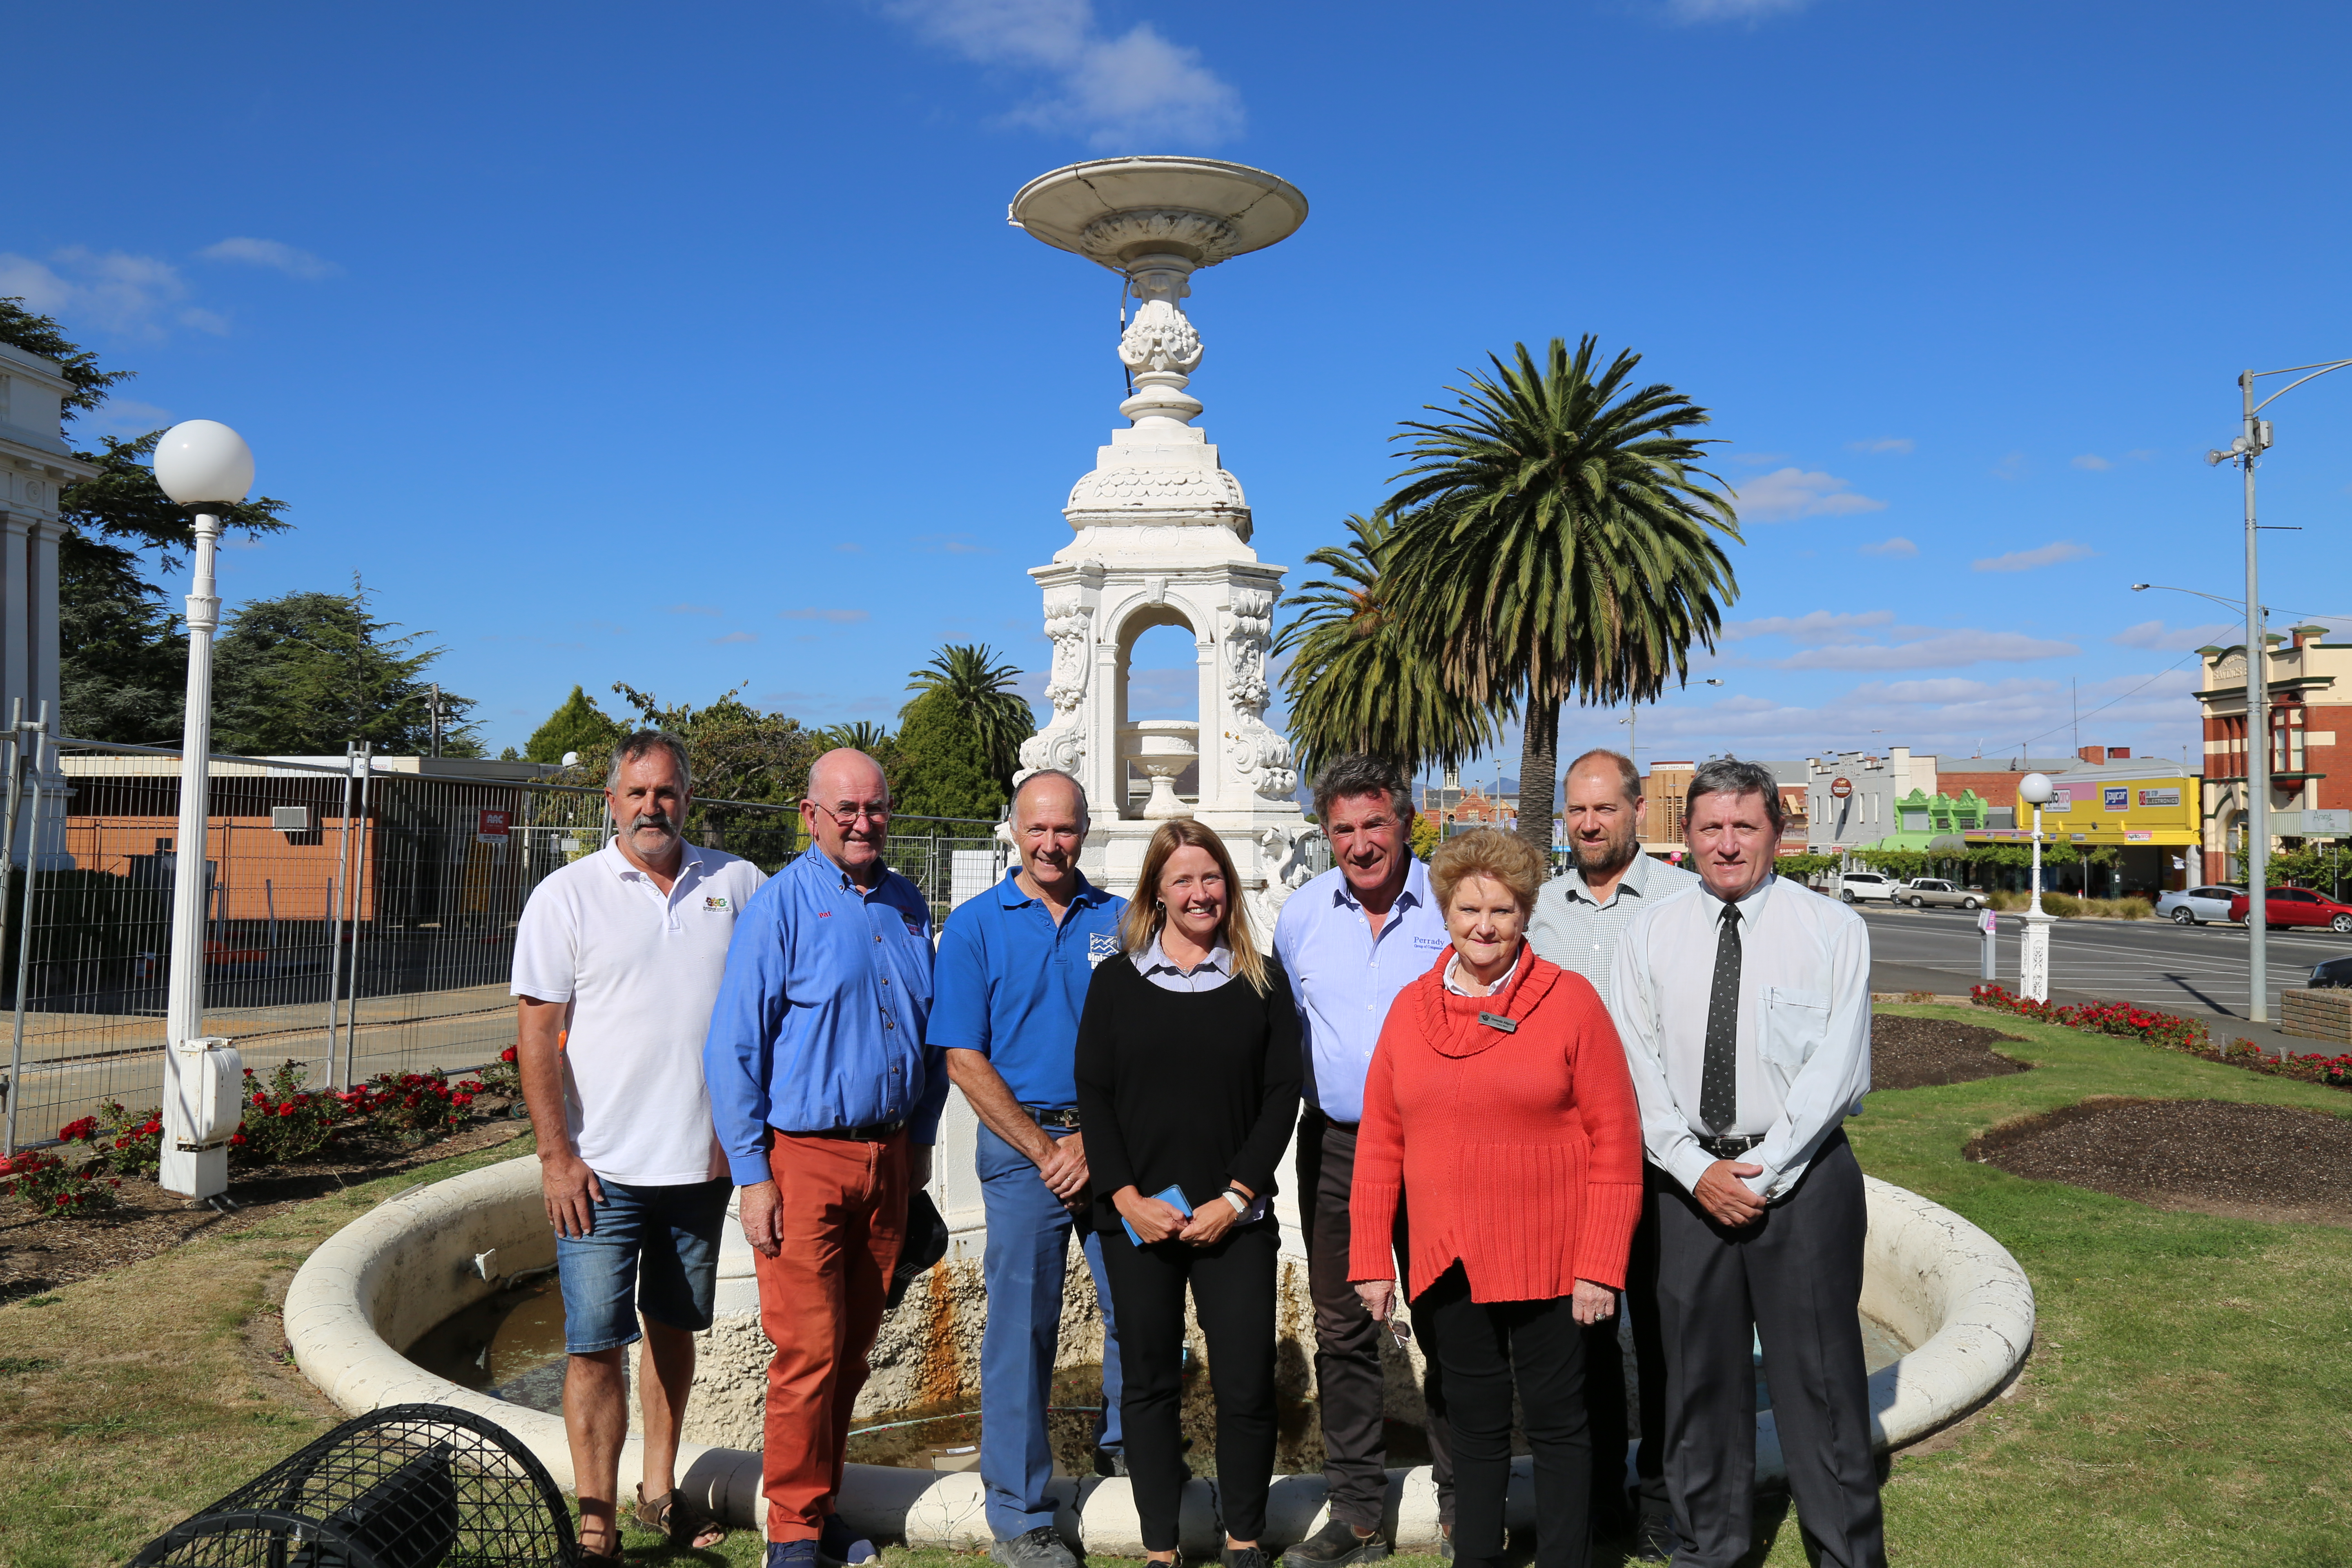 Funding for Fountain Restoration Project